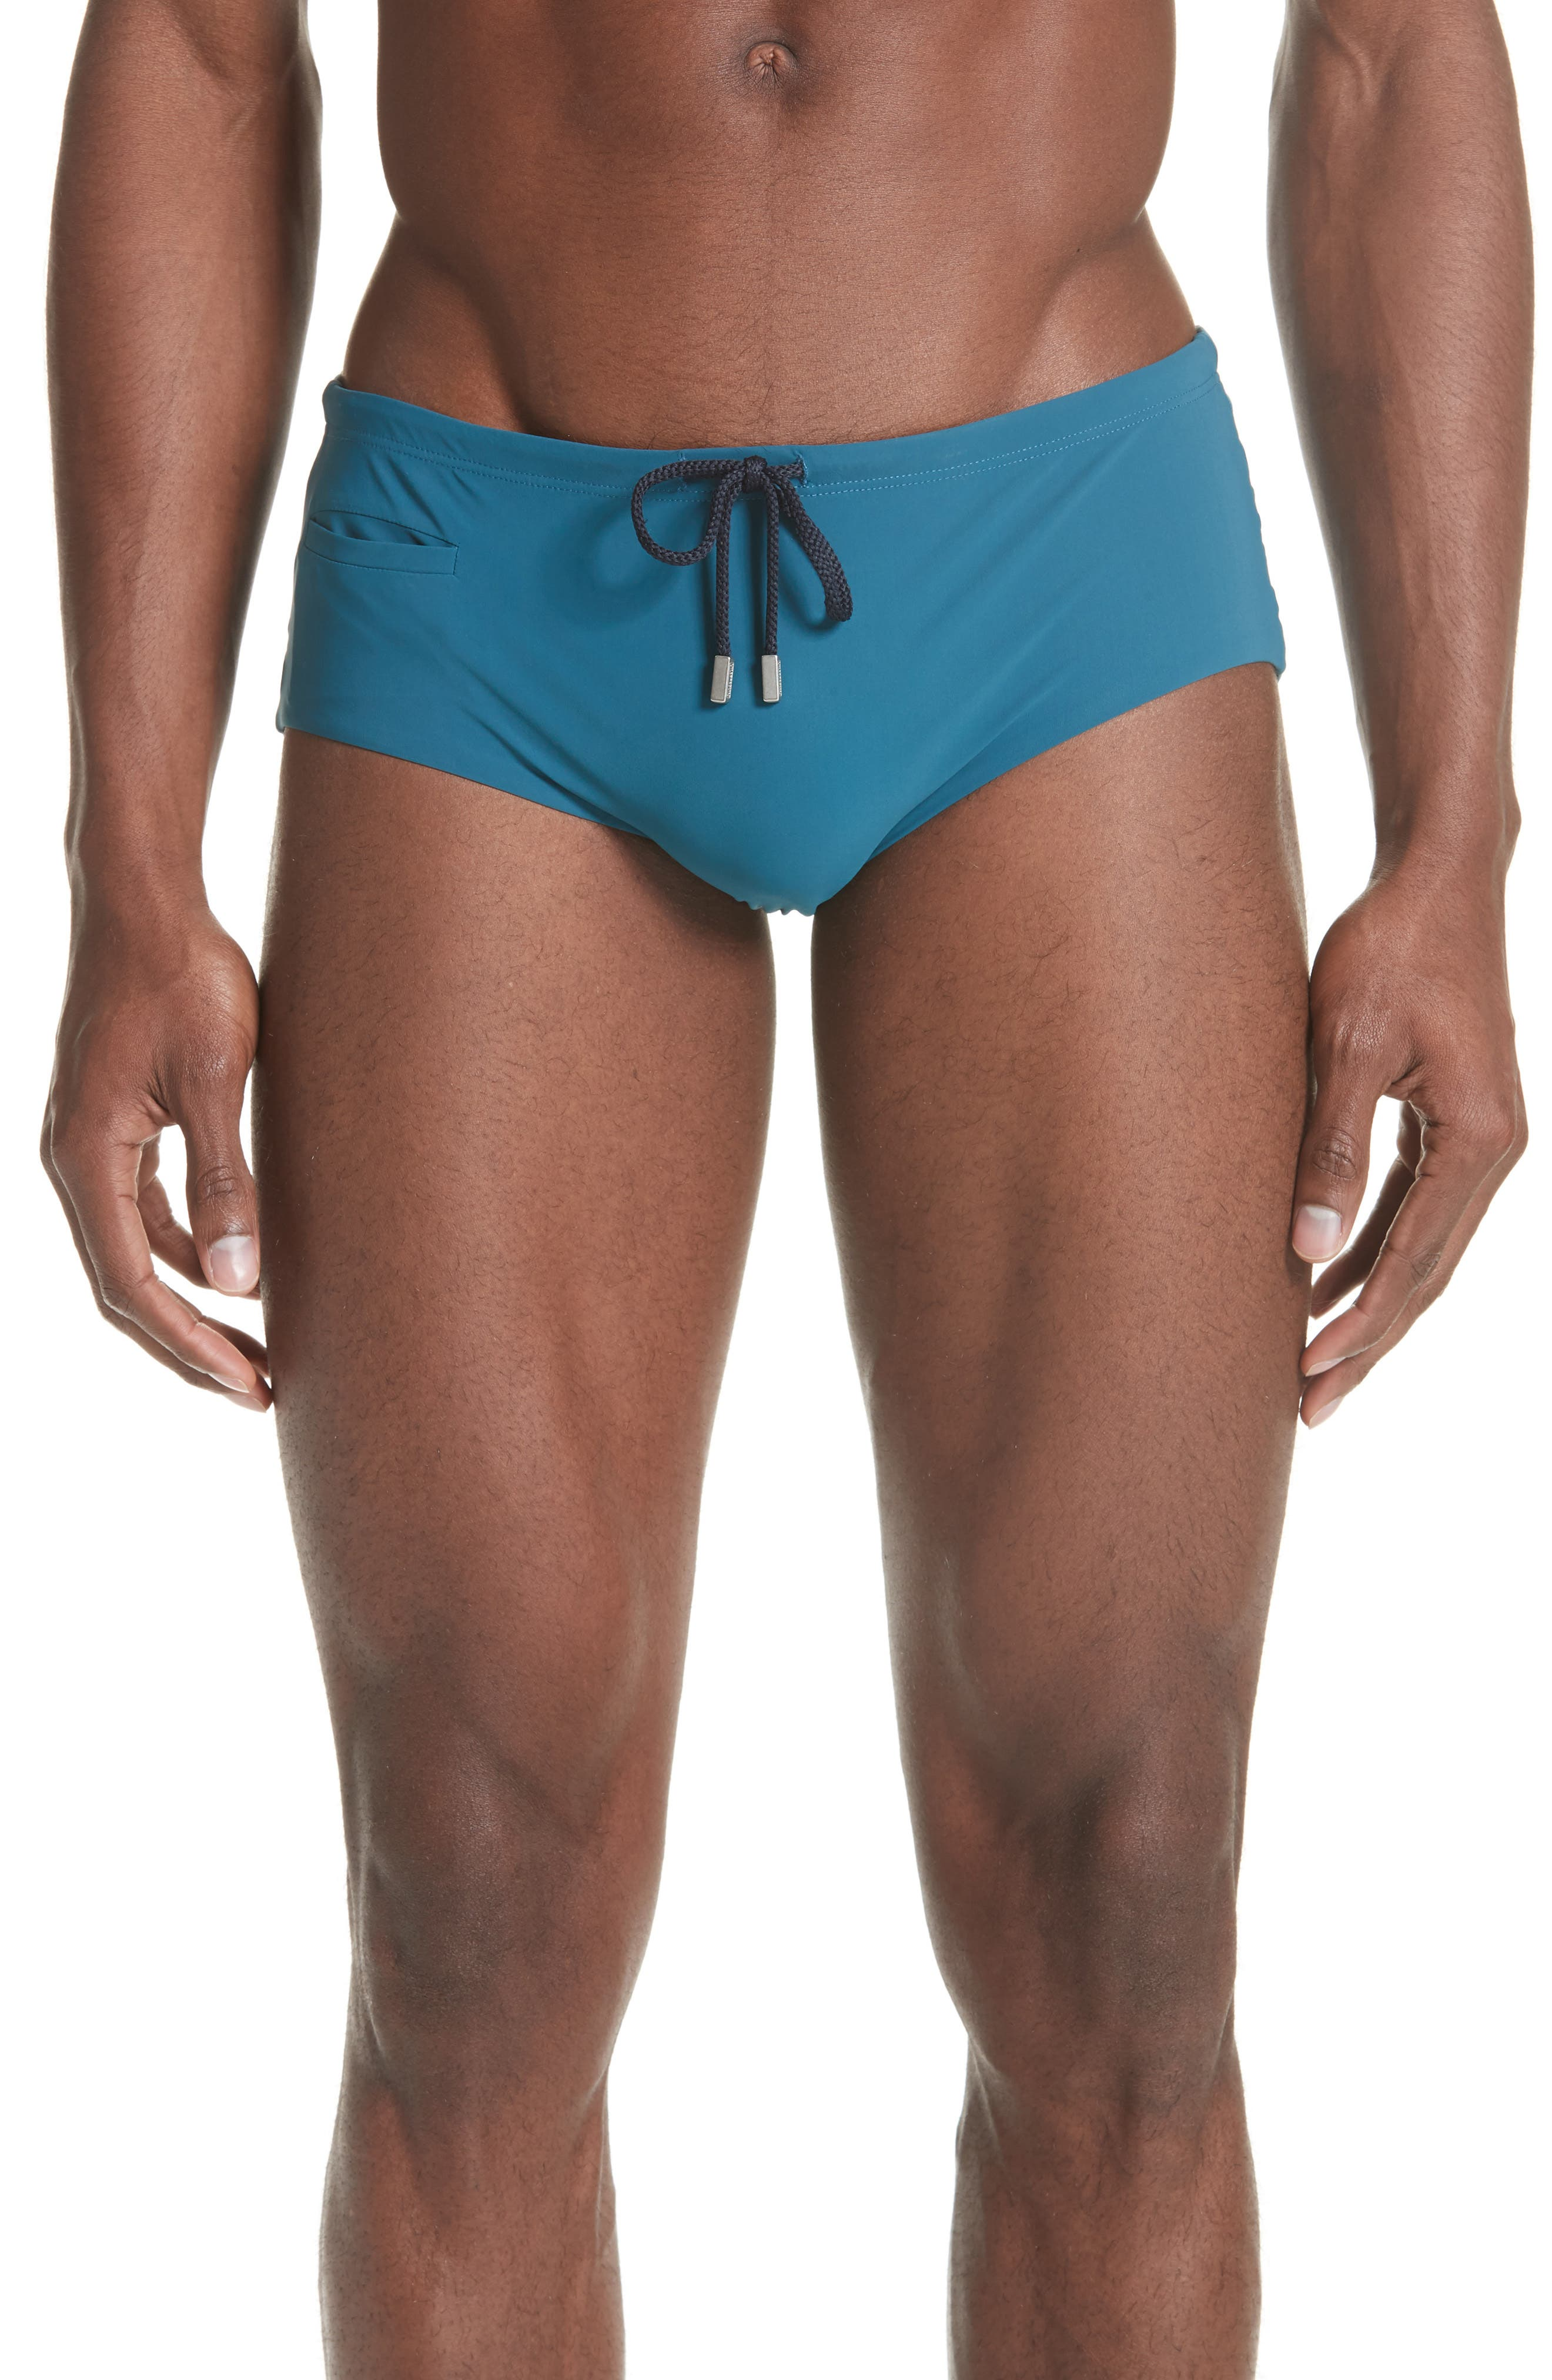 Smoking Jersey Swim Briefs,                             Main thumbnail 1, color,                             EMBRUNS